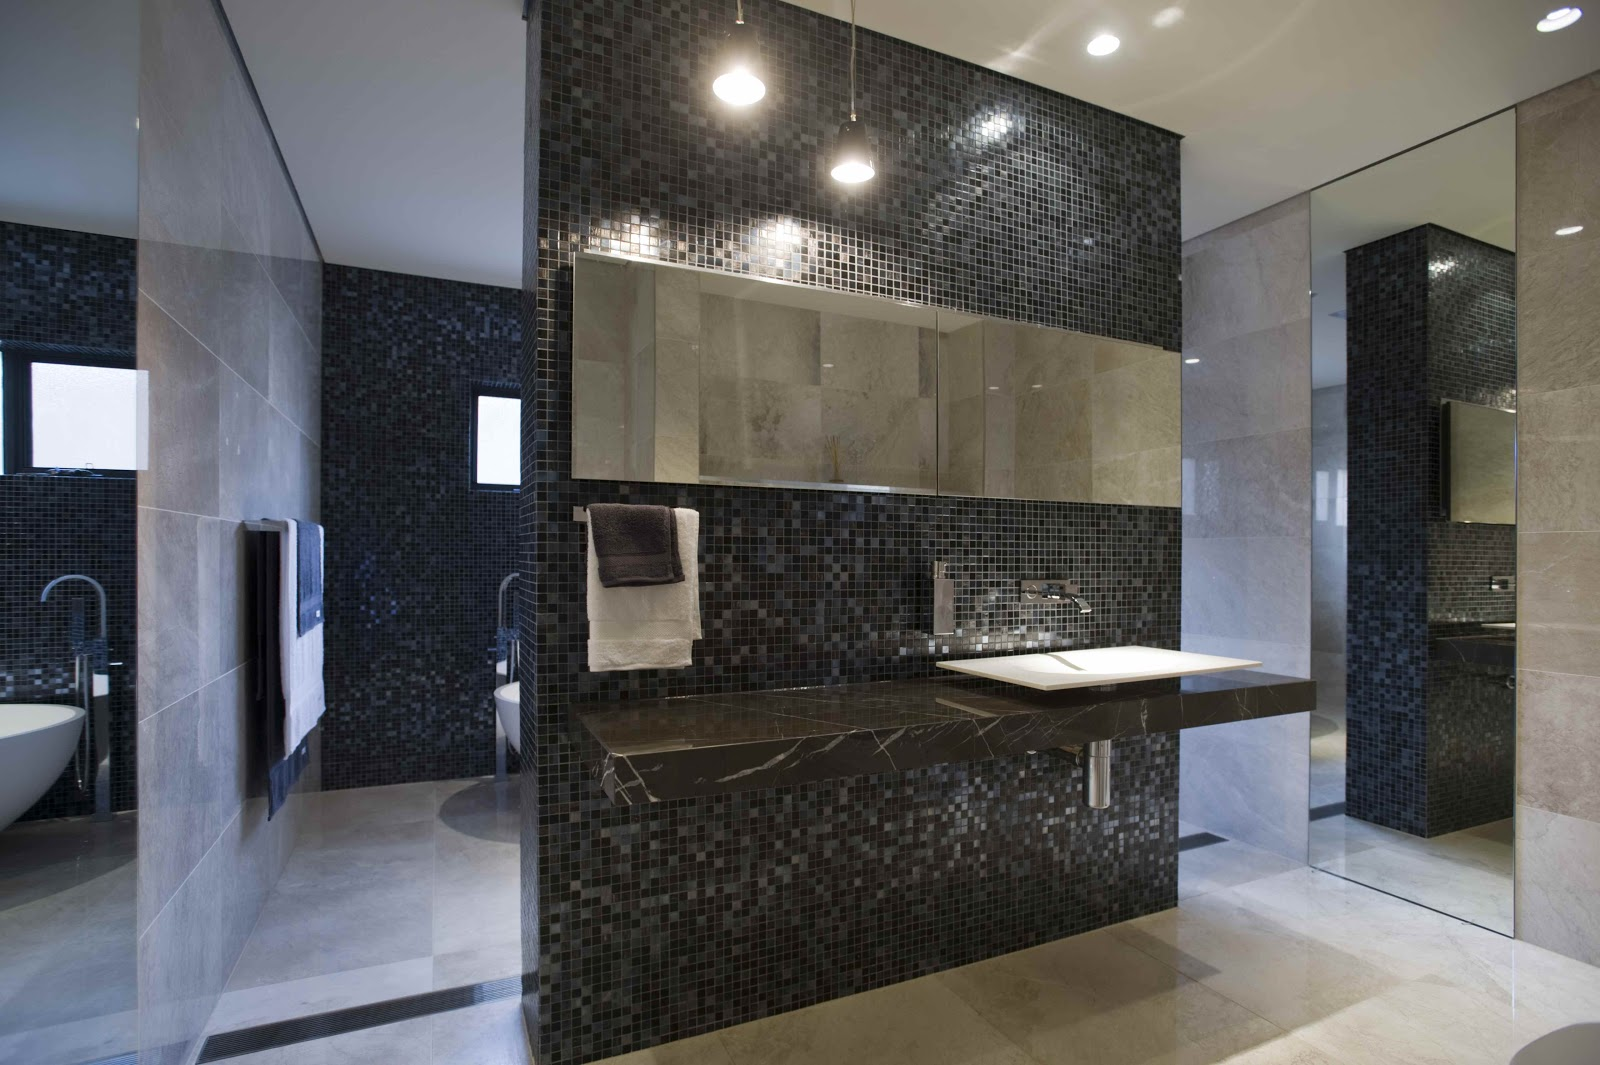 minosa large open bathroom feature the stunning bisazza iside mosaic rh minosadesign com